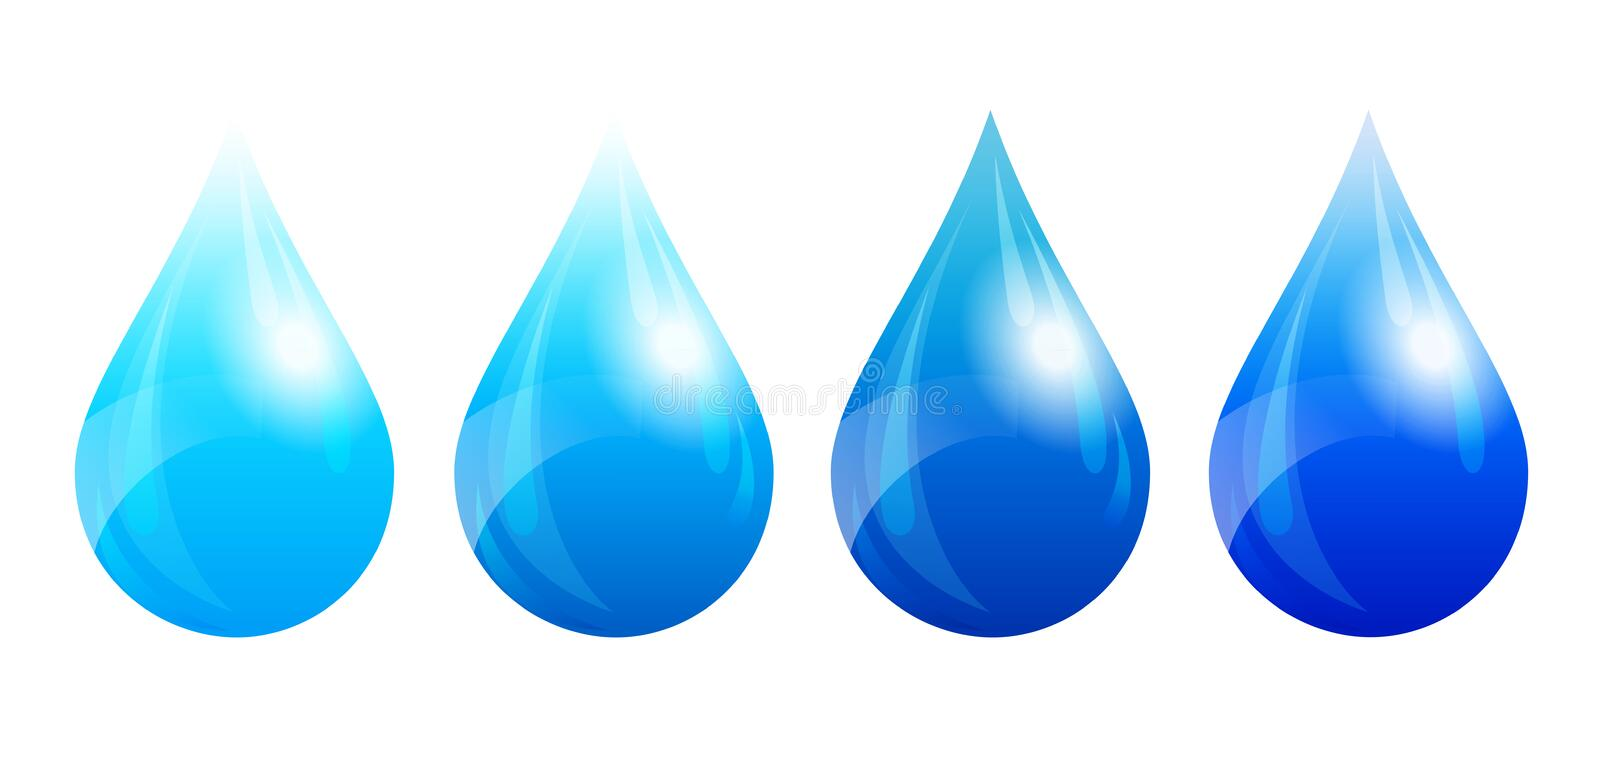 Water Drop, Water Droplet, Four Color Versions royalty free illustration